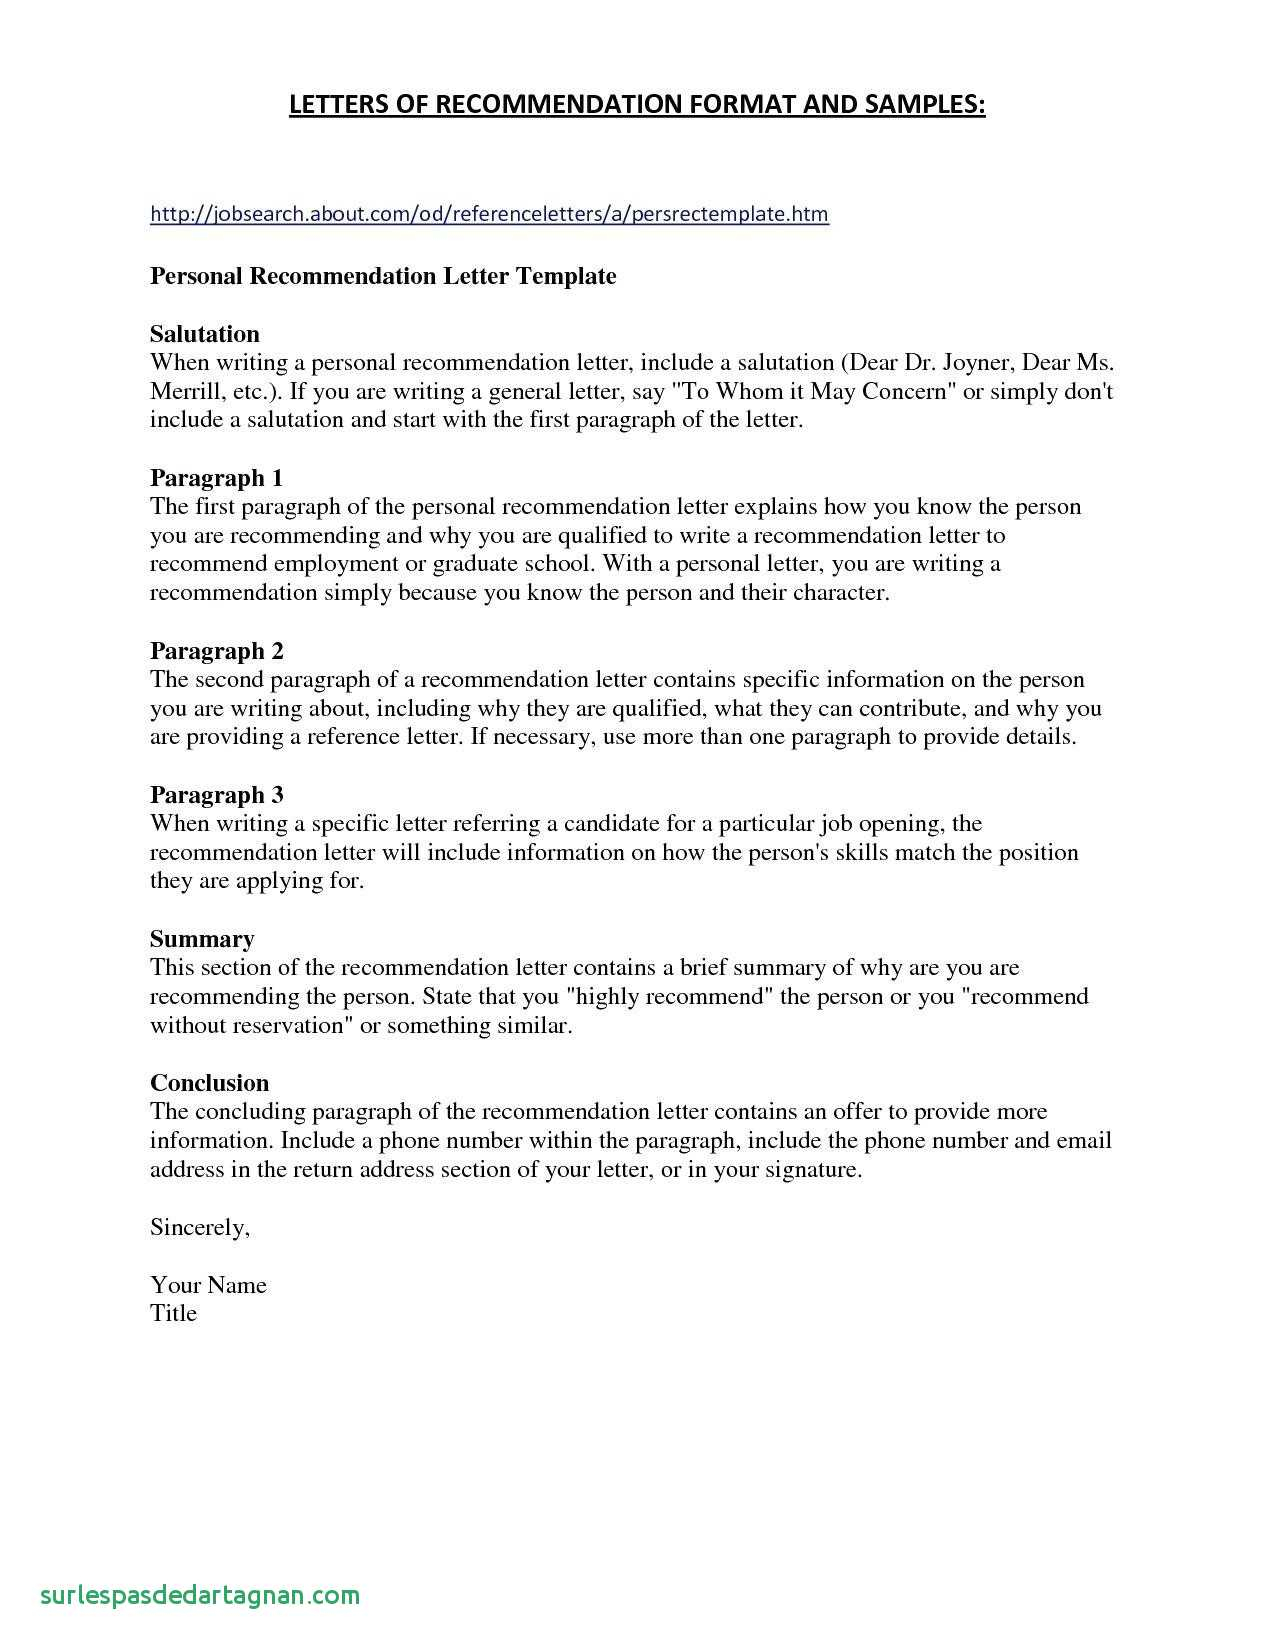 sample letter of personal recommendation